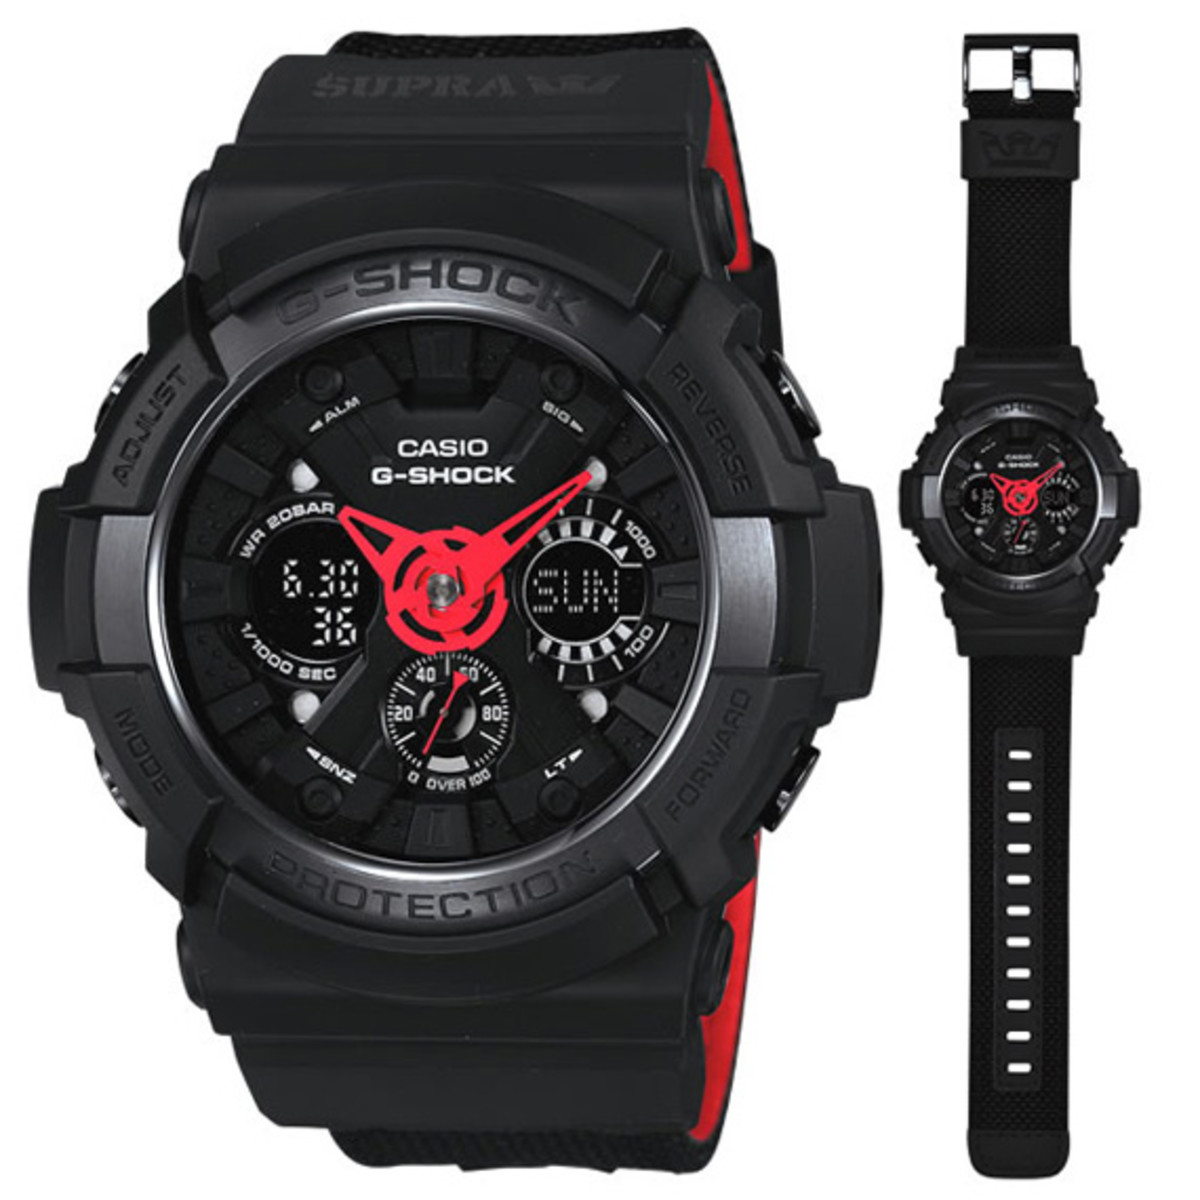 Supra X Casio G Shock Ga 200spr 1ajr Watch Freshness Mag 100l 1a 30th Anniversary Edition Water Resistant Up To 20 Atmospheric Bars Anti Magnetic